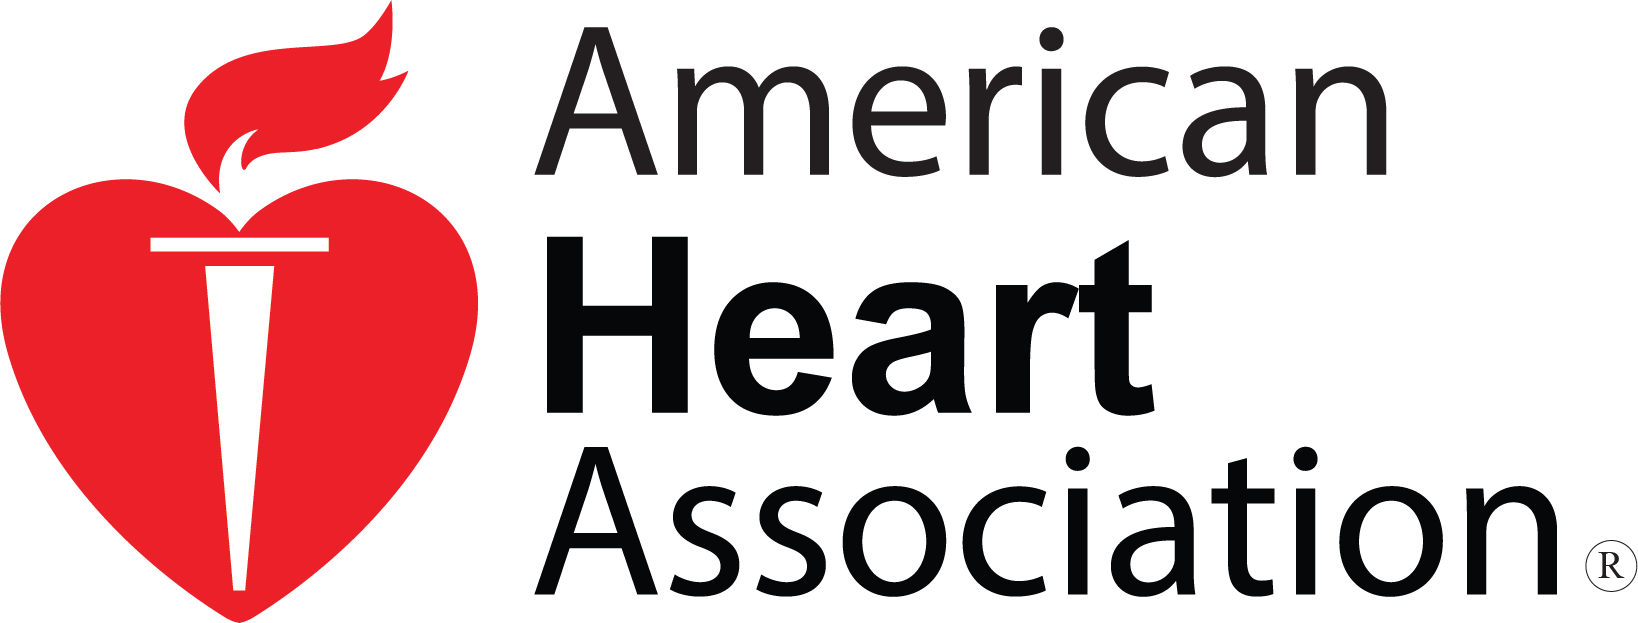 First Aid Classes Cpr Skills Woodbury Mn